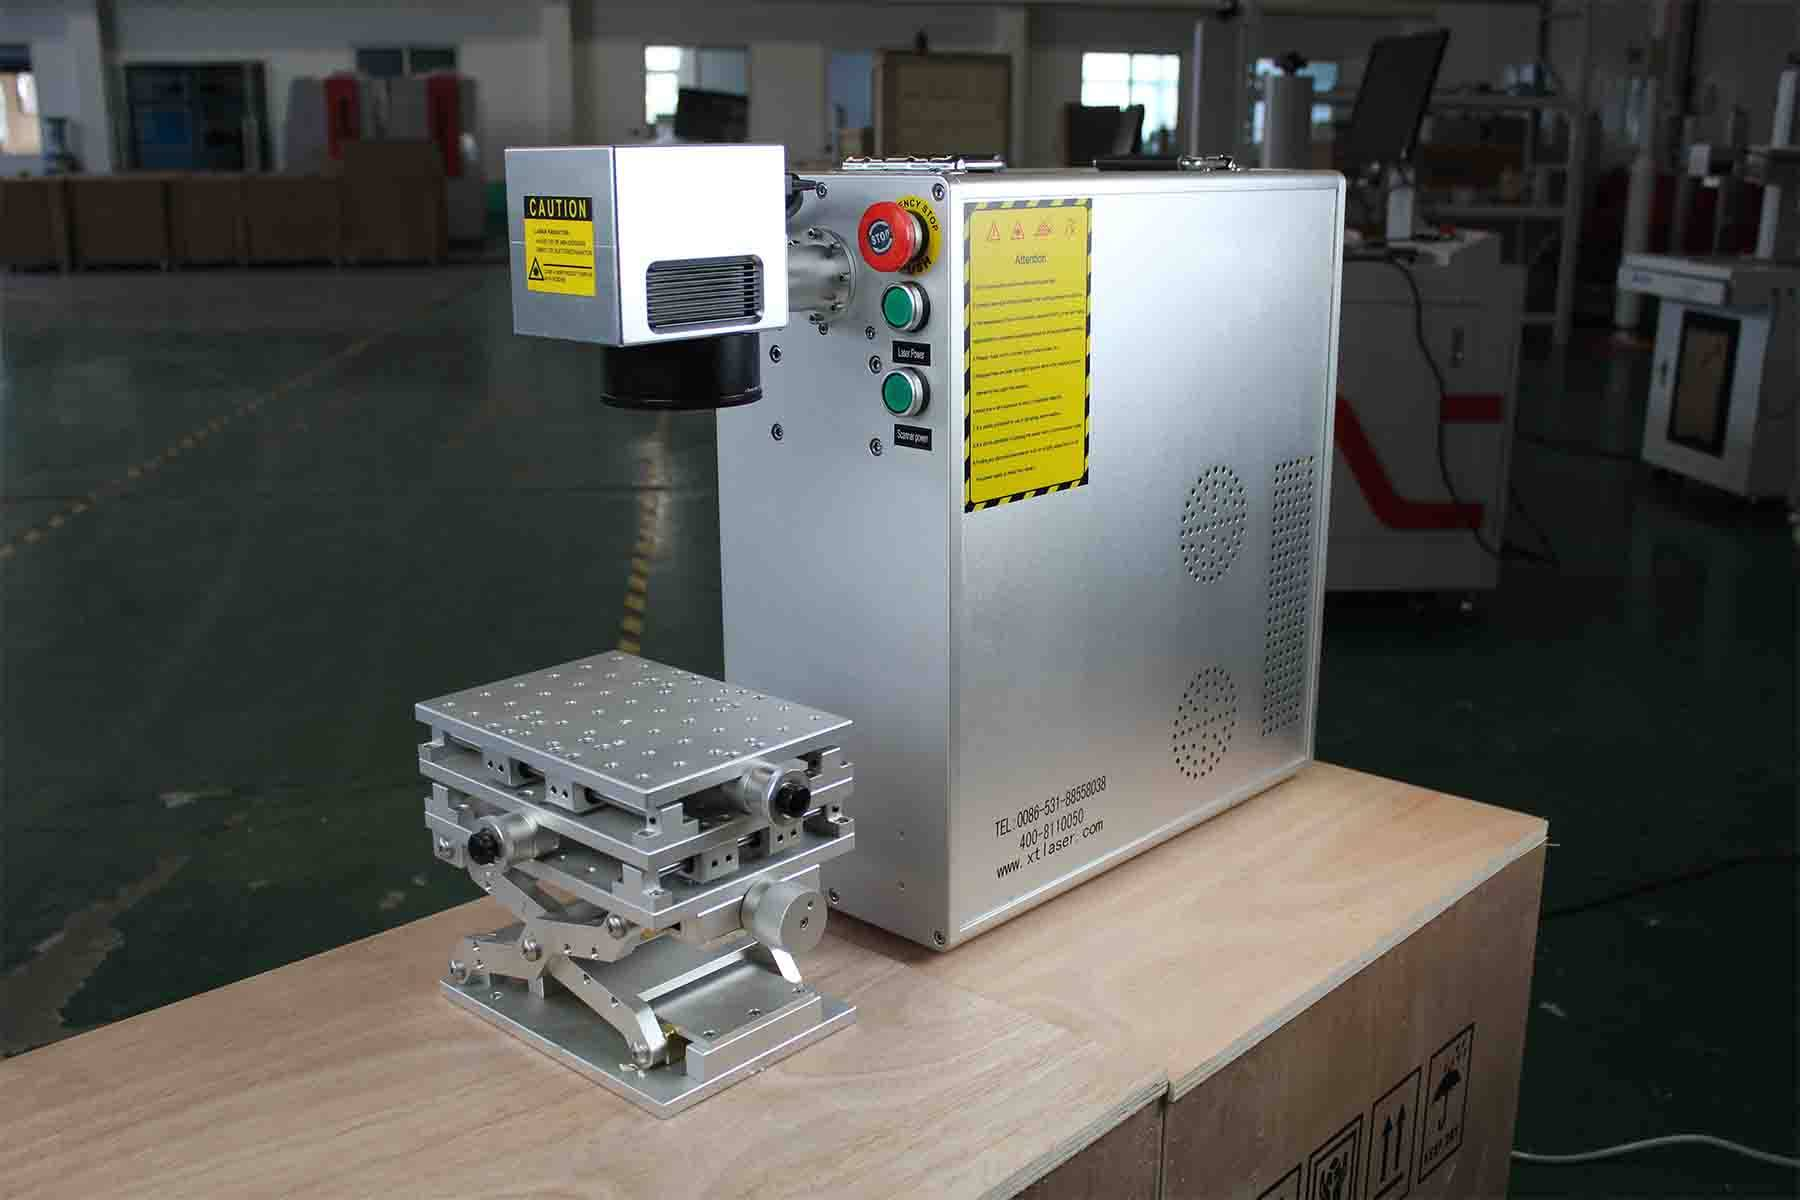 Maobo 30W Laser Marking Machines/Fiber Laser Marking Machine for Metal